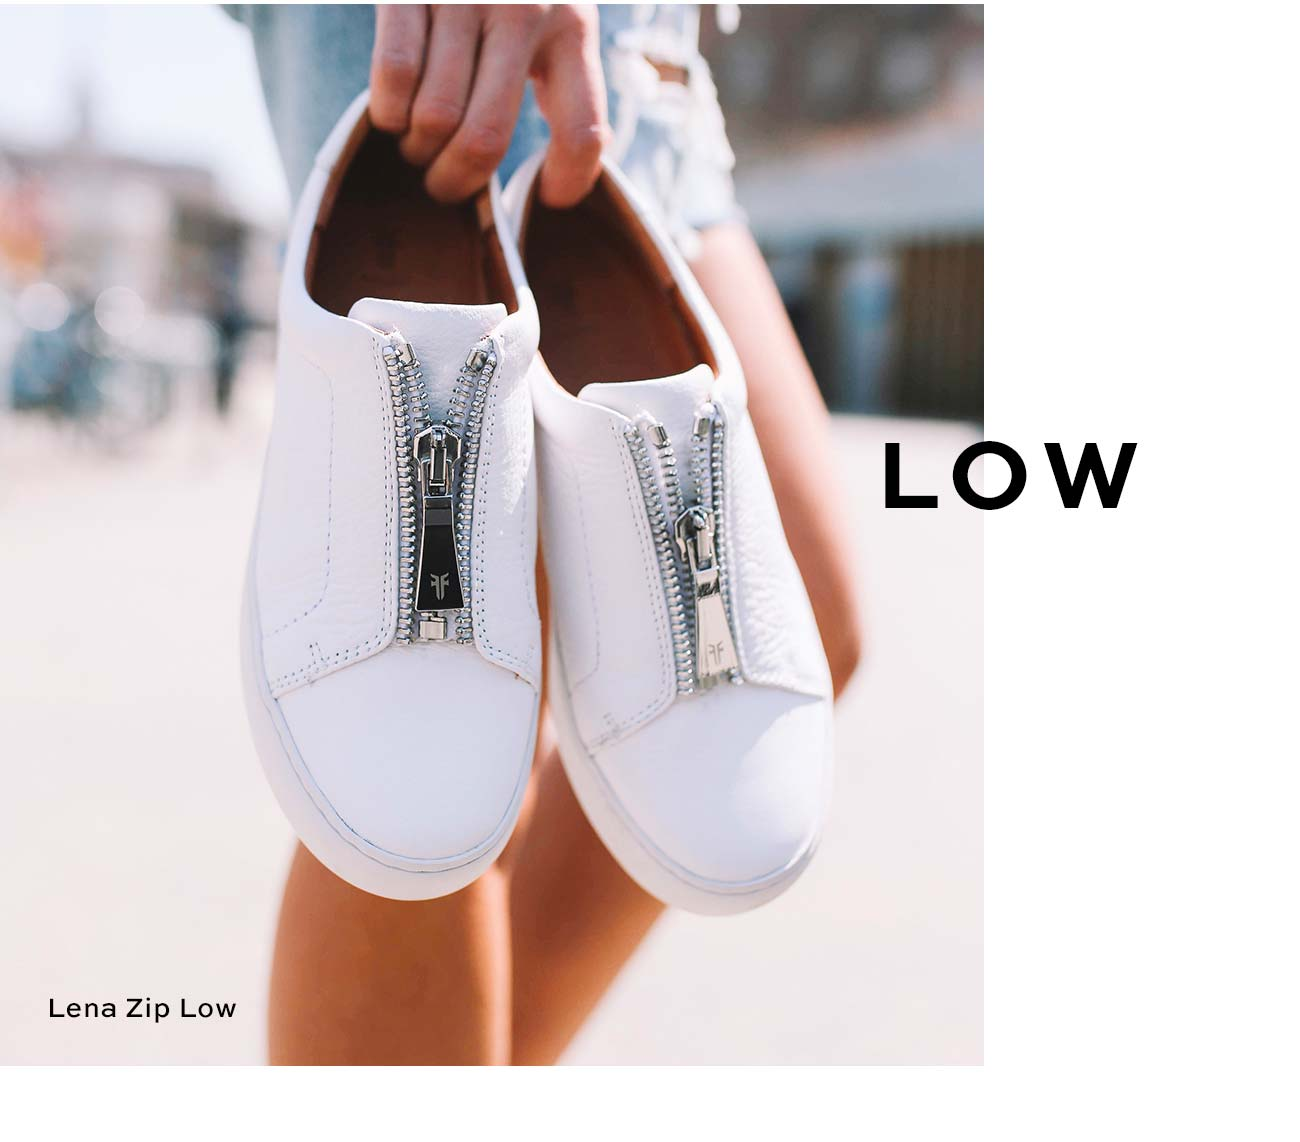 Lena Zip Low